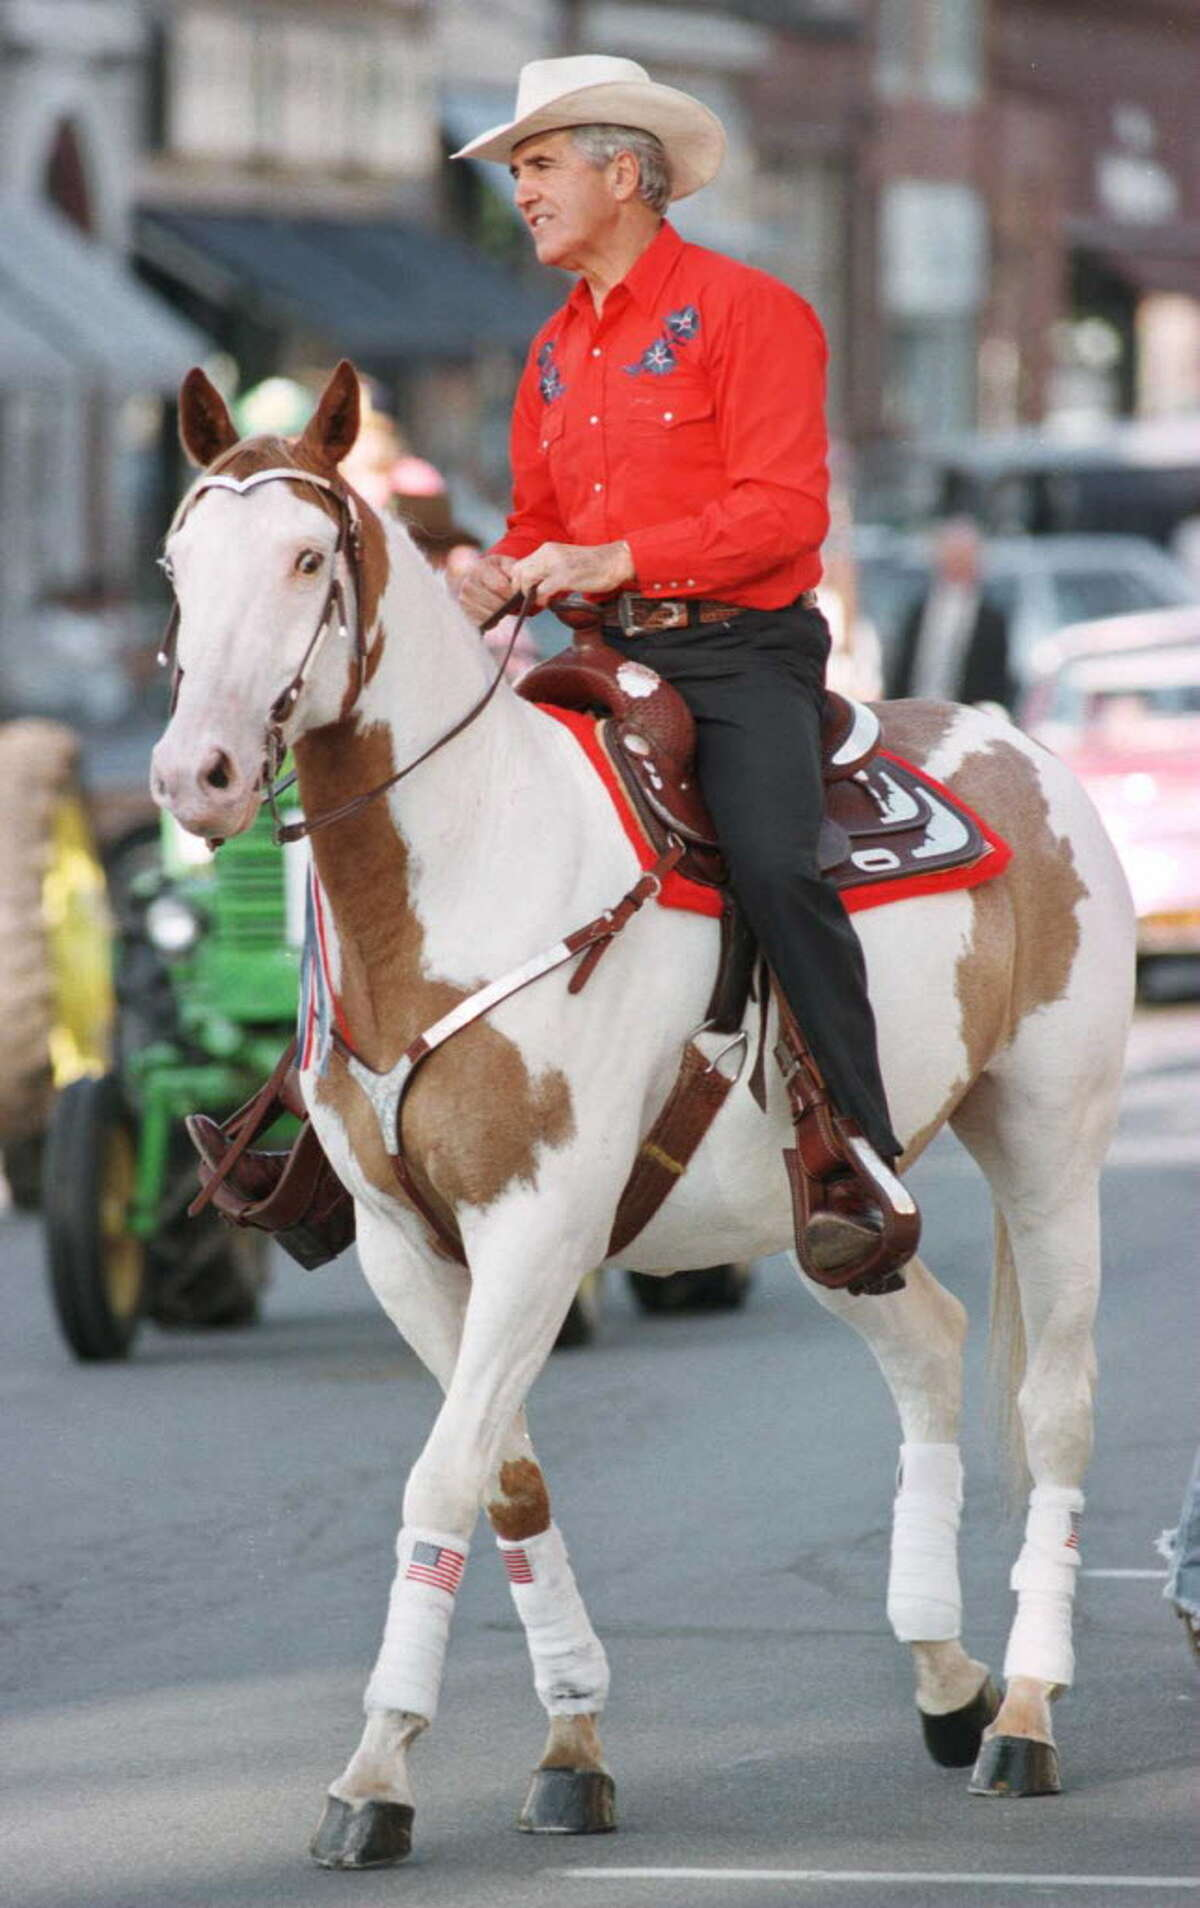 Senator Joseph L. Bruno rides his horse, Apache, in the Saratoga County Fair opening day parade on July 23, 1996.